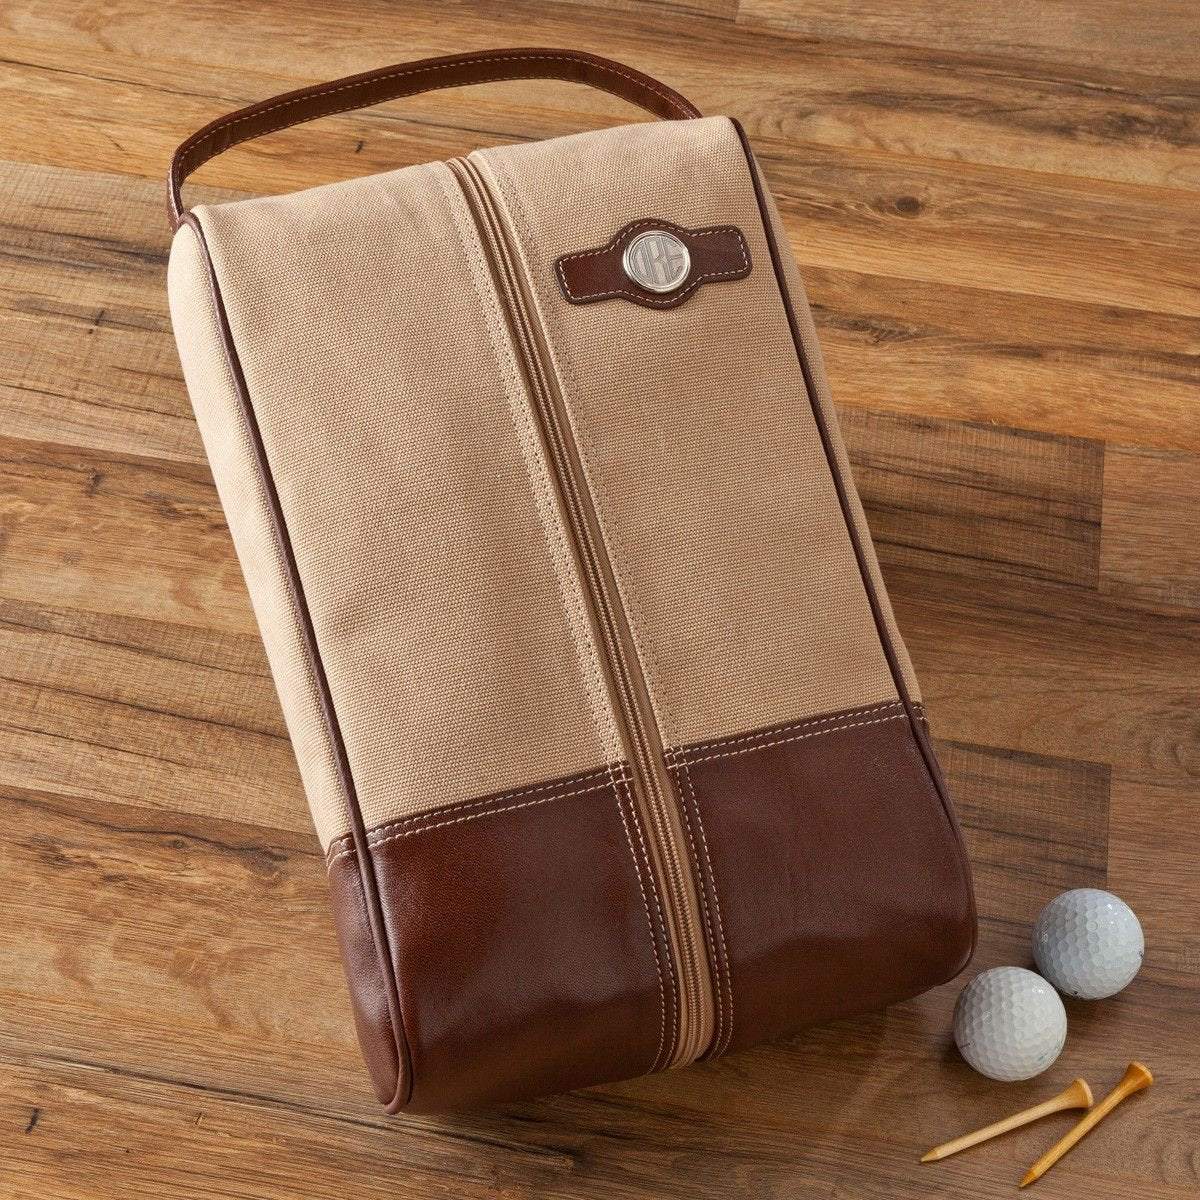 Personalized-Golf-Shoe-Bag-Leather-and-Canvas-Executive-Gifts